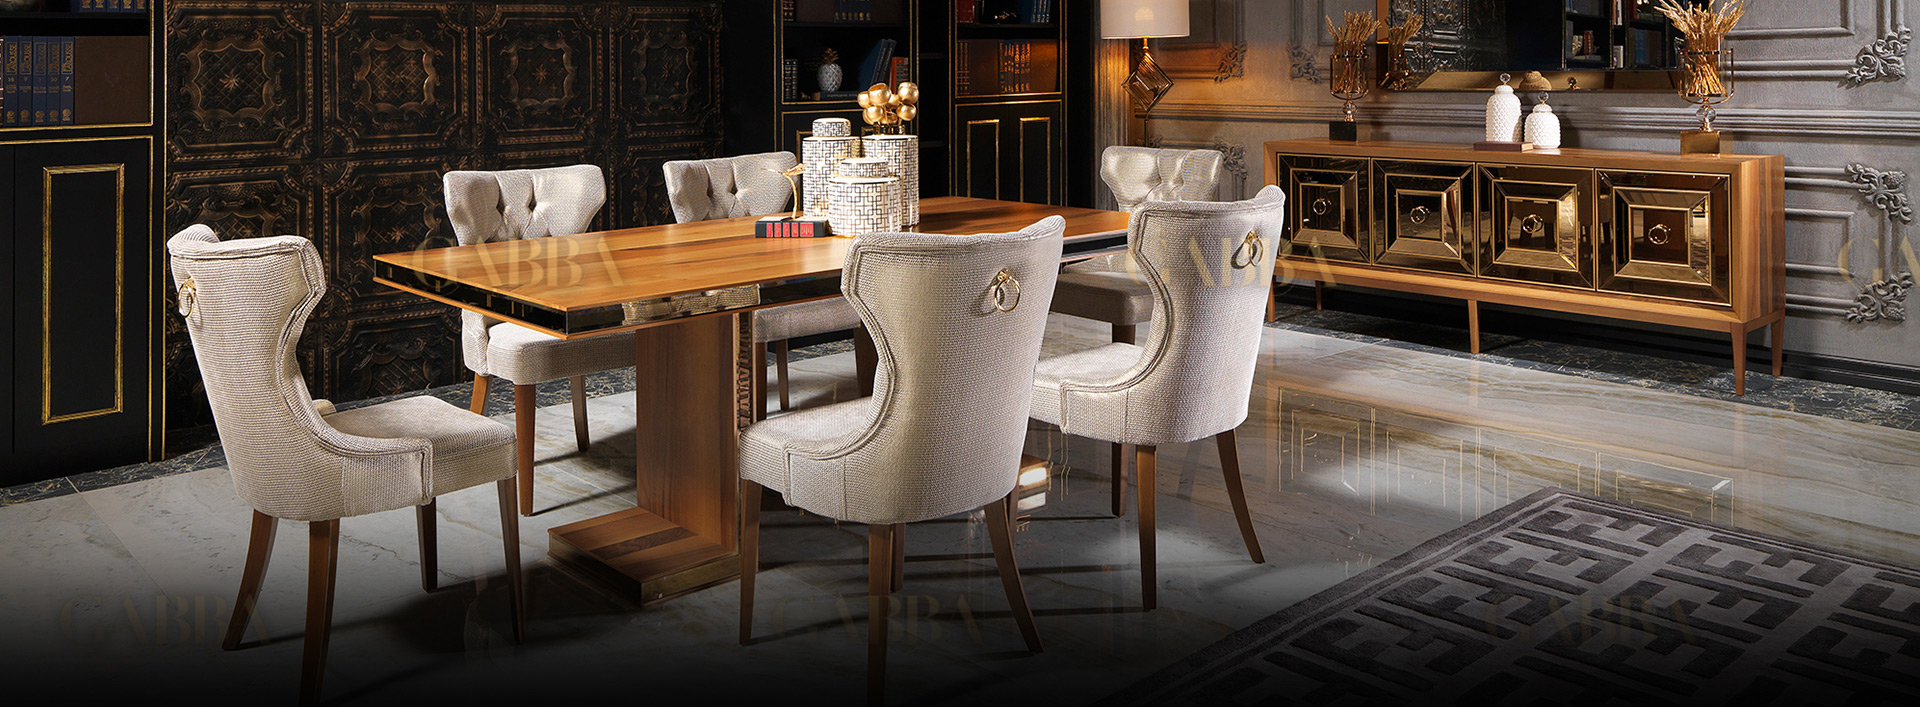 Collection Versace 1022 Gabba, Versace Dining Room Set